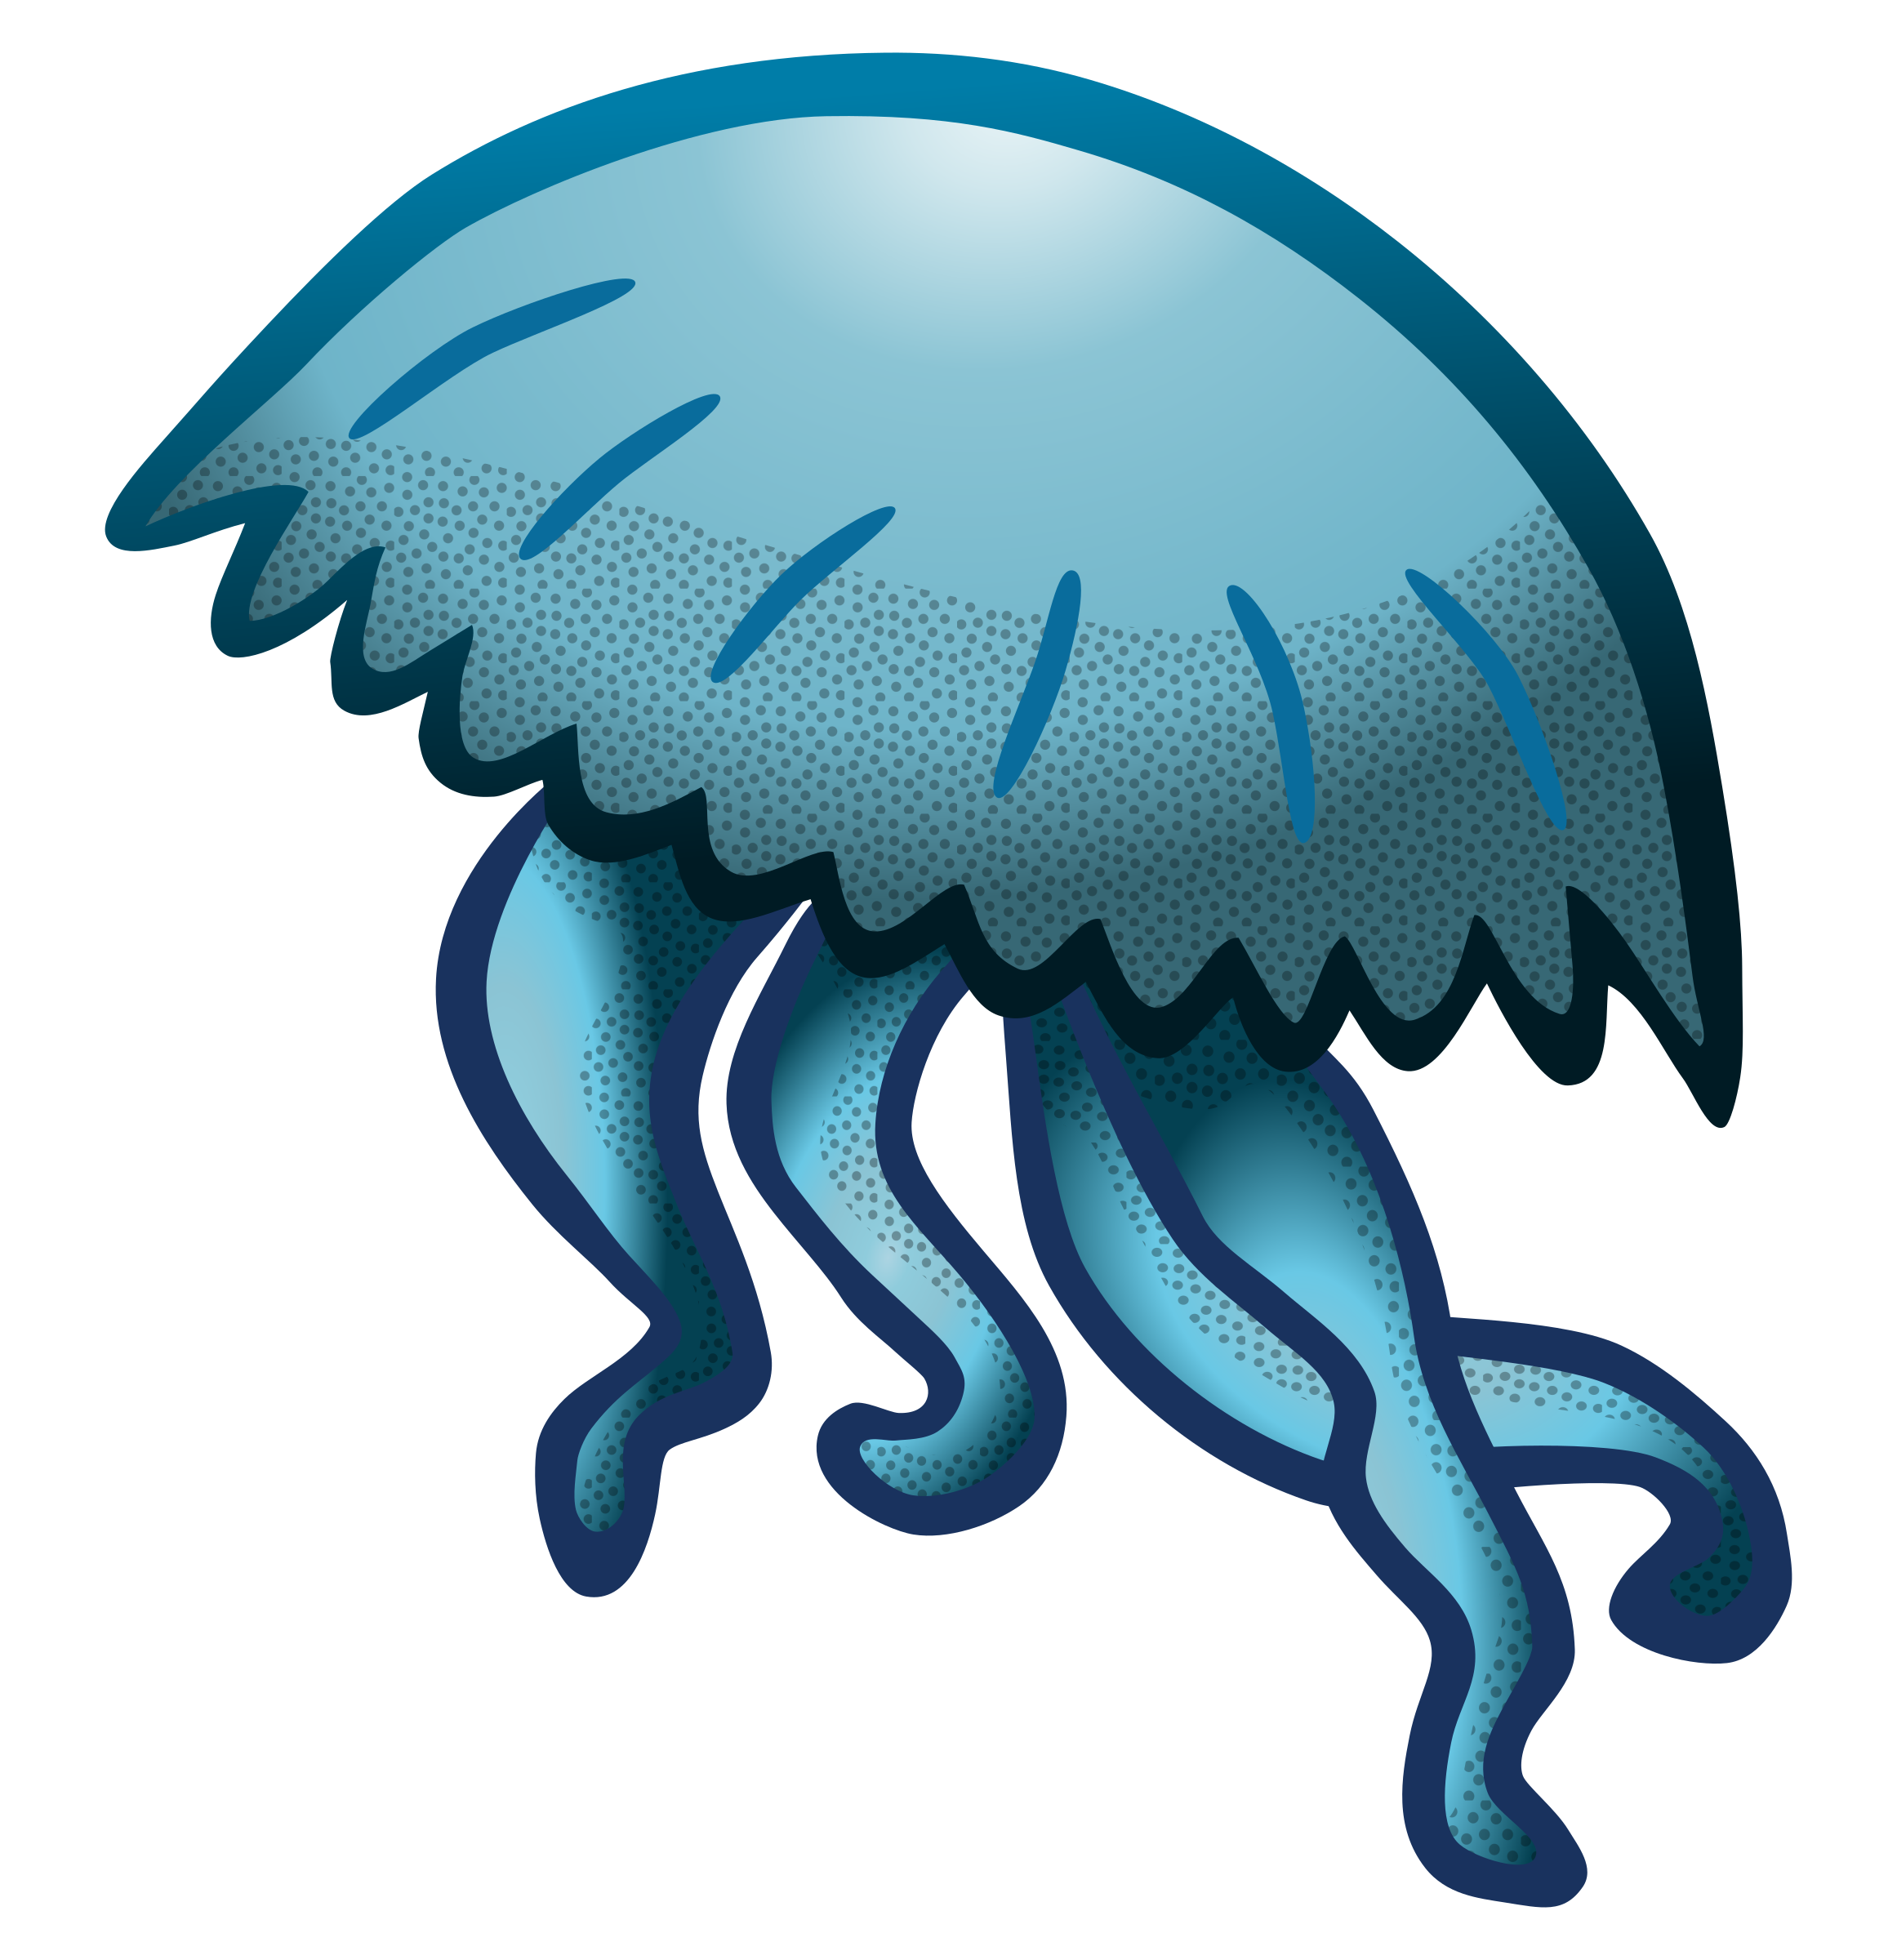 Dictionary clipart source. Jellyfish coloured big image